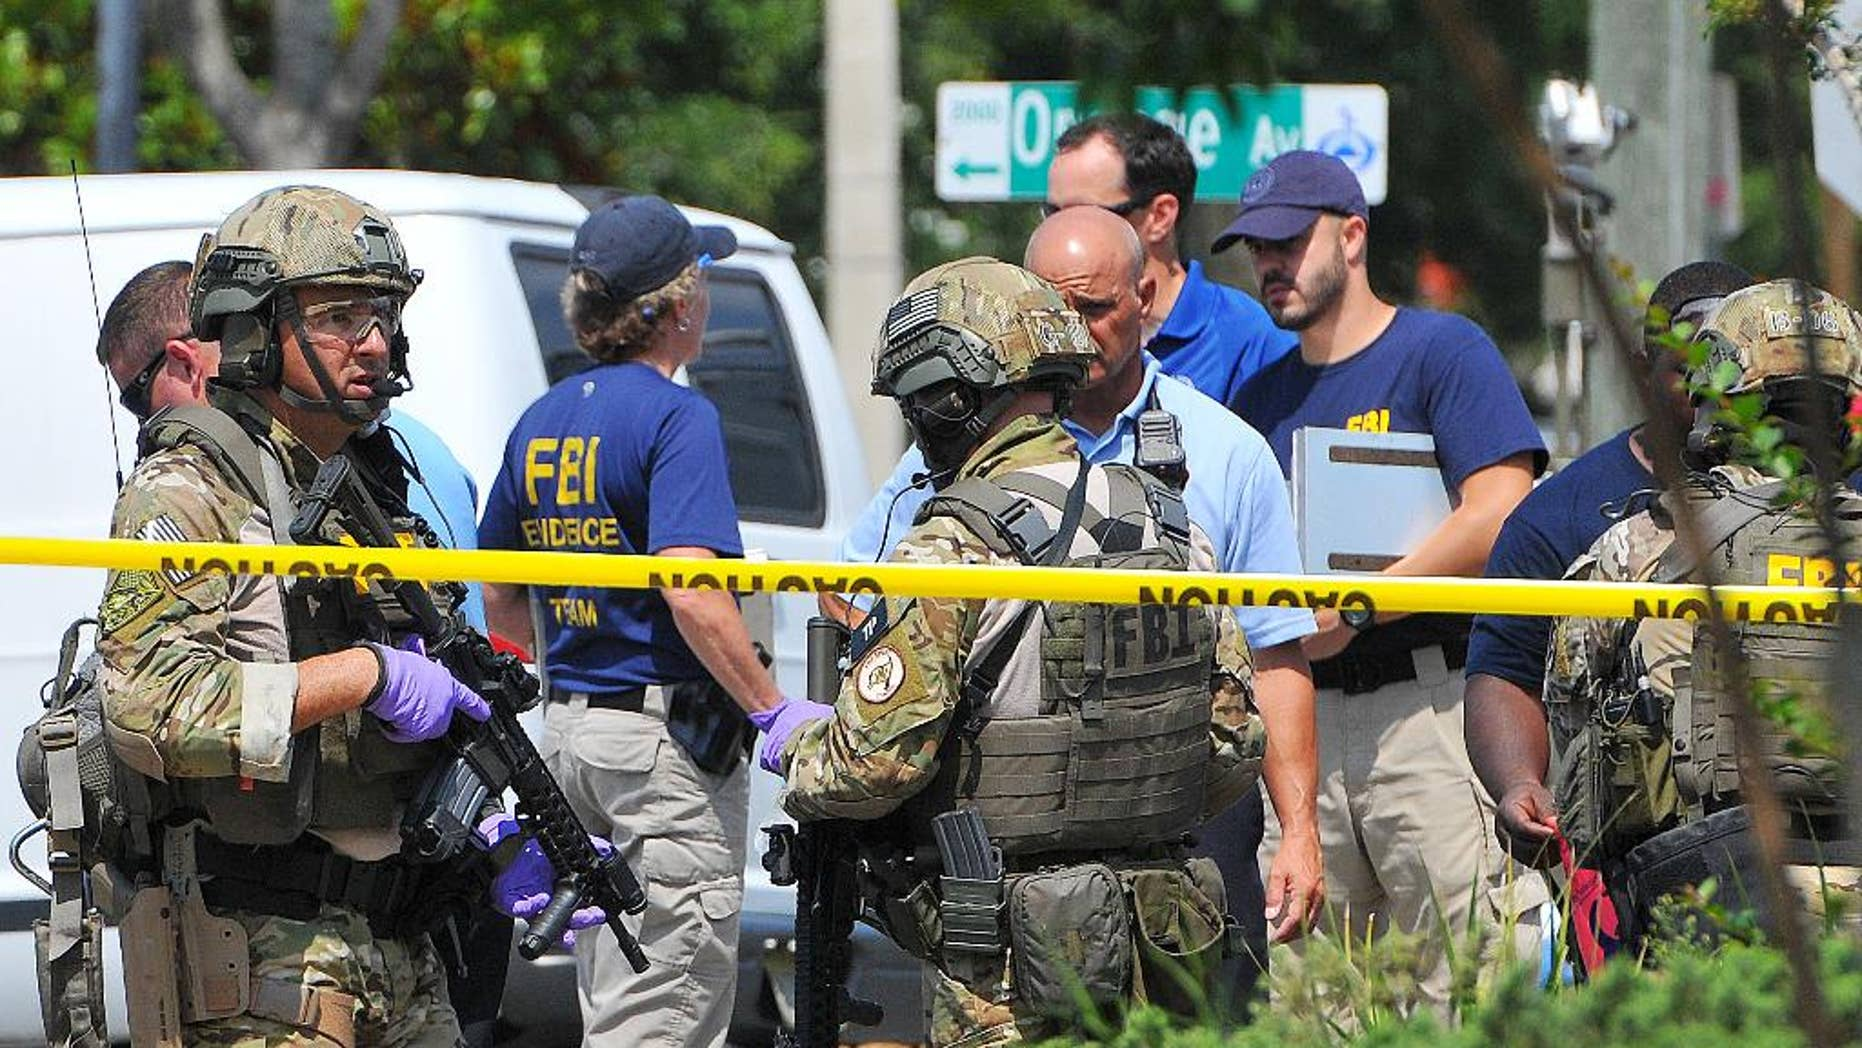 """FILE - In this June 12, 2016 file photo, FBI, Orlando Police Department and personnel from the Orange County Sheriff's Office investigate the attack at the Pulse nightclub in Orlando, Fla. New reports show that law enforcement officials immediately suspected terrorism and adjusted their staging areas due to fears about an explosive device as they responded to reports of shots fired at the gay nightclub in Orlando. In incident reports released Saturday, June 25, Orange County Sheriff's Office deputies describe receiving limited information about an """"active shooter"""" as they rushed to control the chaos outside Pulse on June 12.  (Craig Rubadoux/Florida Today via AP, File) NO SALES; MANDATORY CREDIT"""